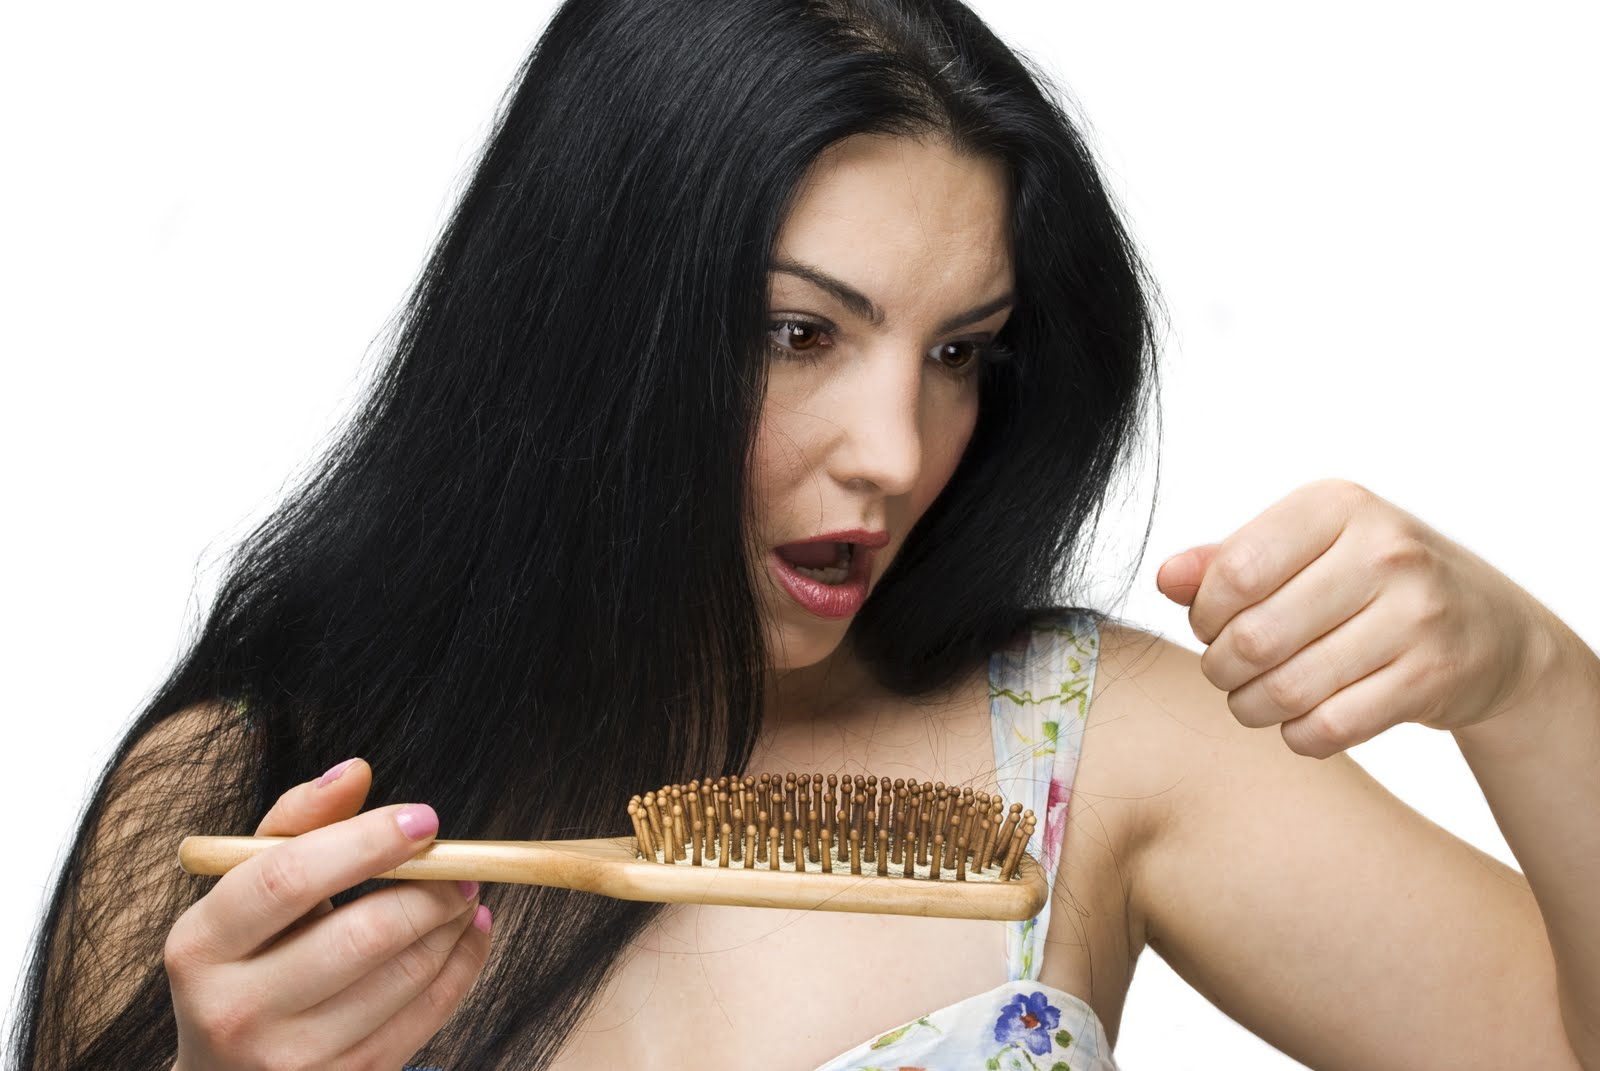 Beauty Tips For Hair Loss Problems, hair beauty tips, lose hair beauty tips, lose hair tips, hair loss problem, hair loss remedies, hair treatment for hair loss, remedies hair loss, remedies for hair loss, hair care tips.http://www.fashionfash.com/c/beauty-tips/